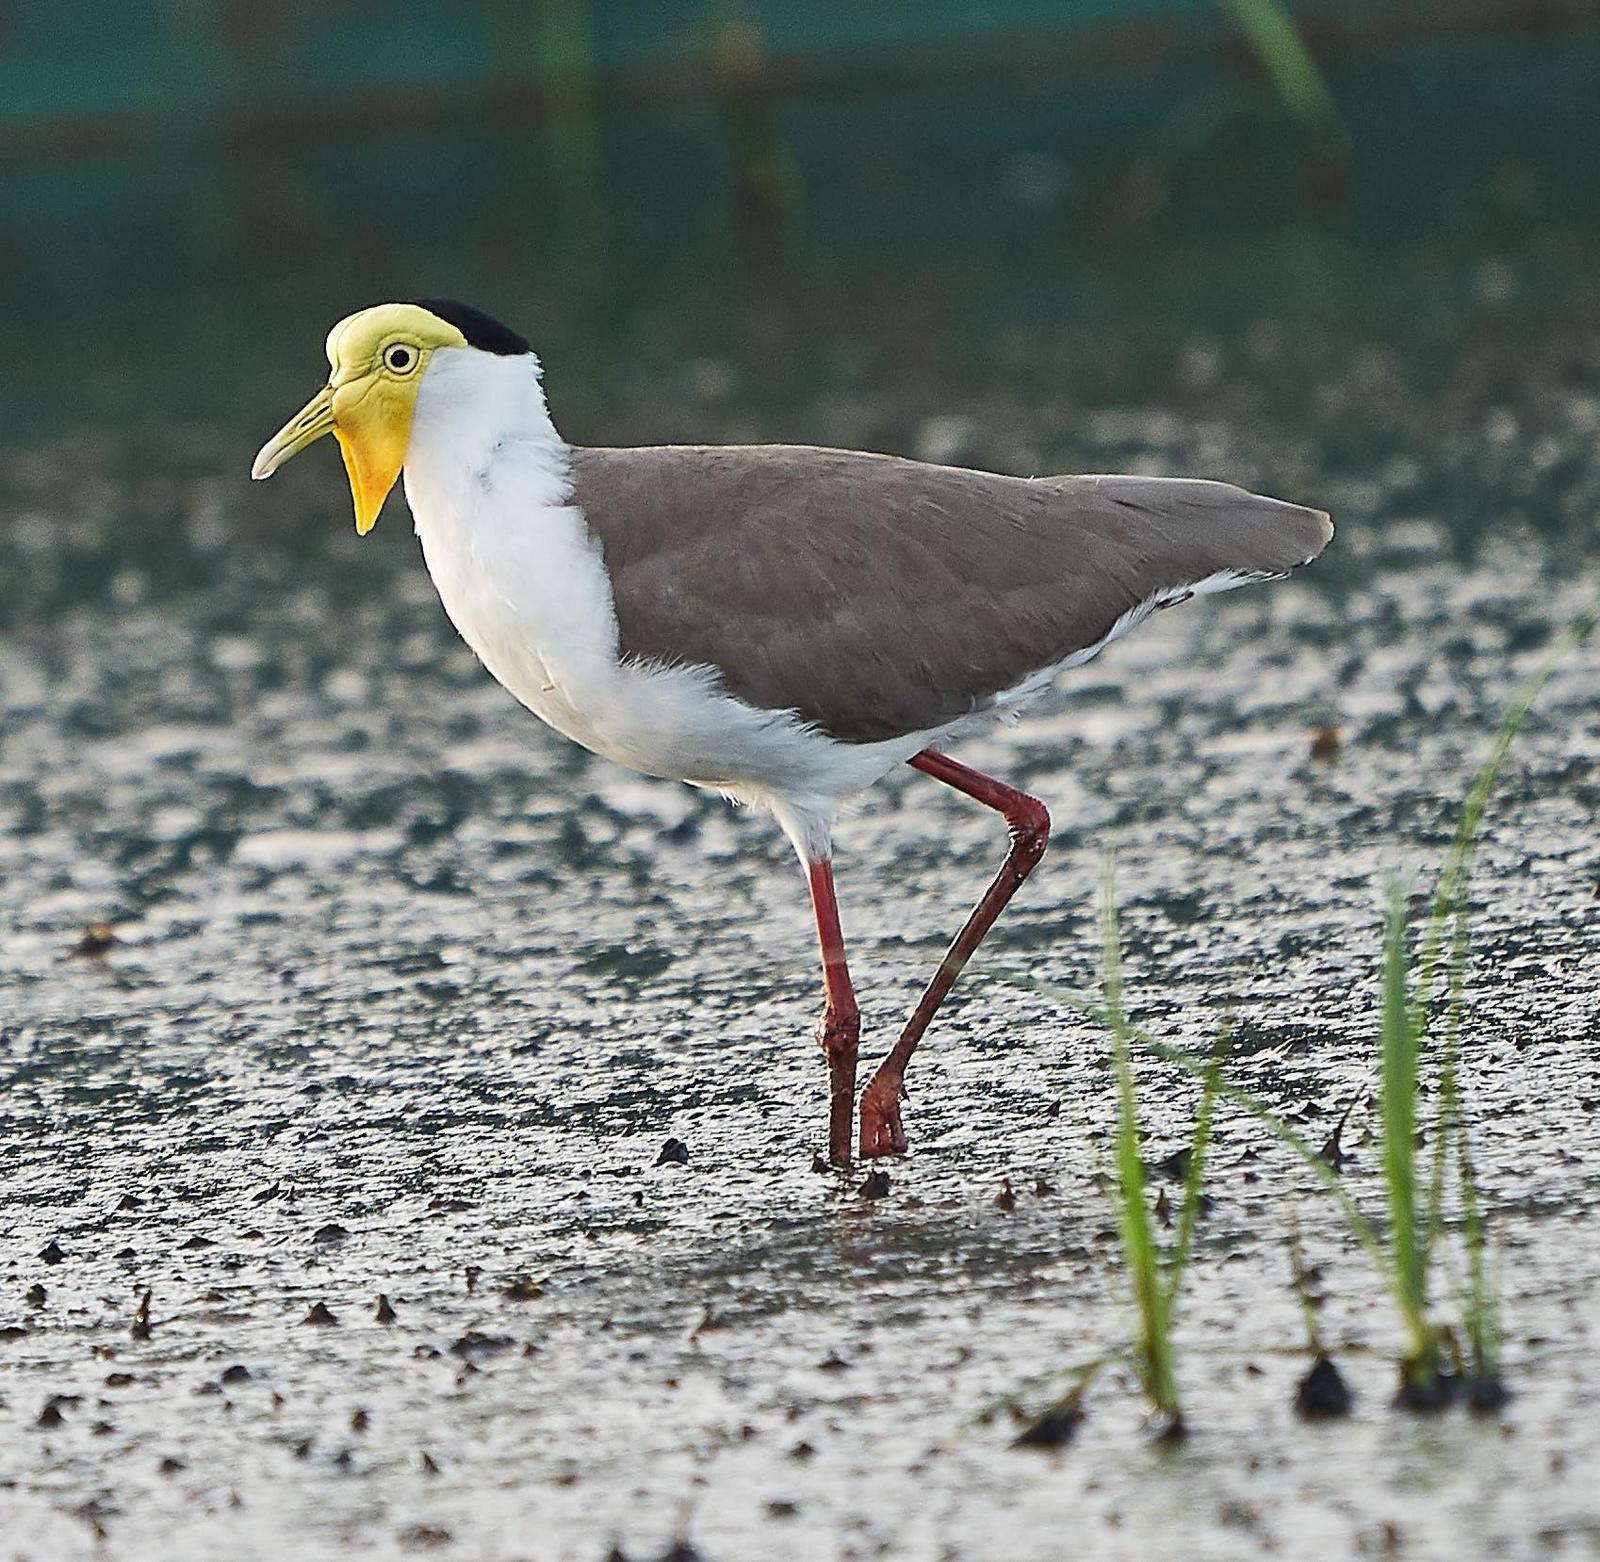 Masked Lapwing Photo by Steven Cheong